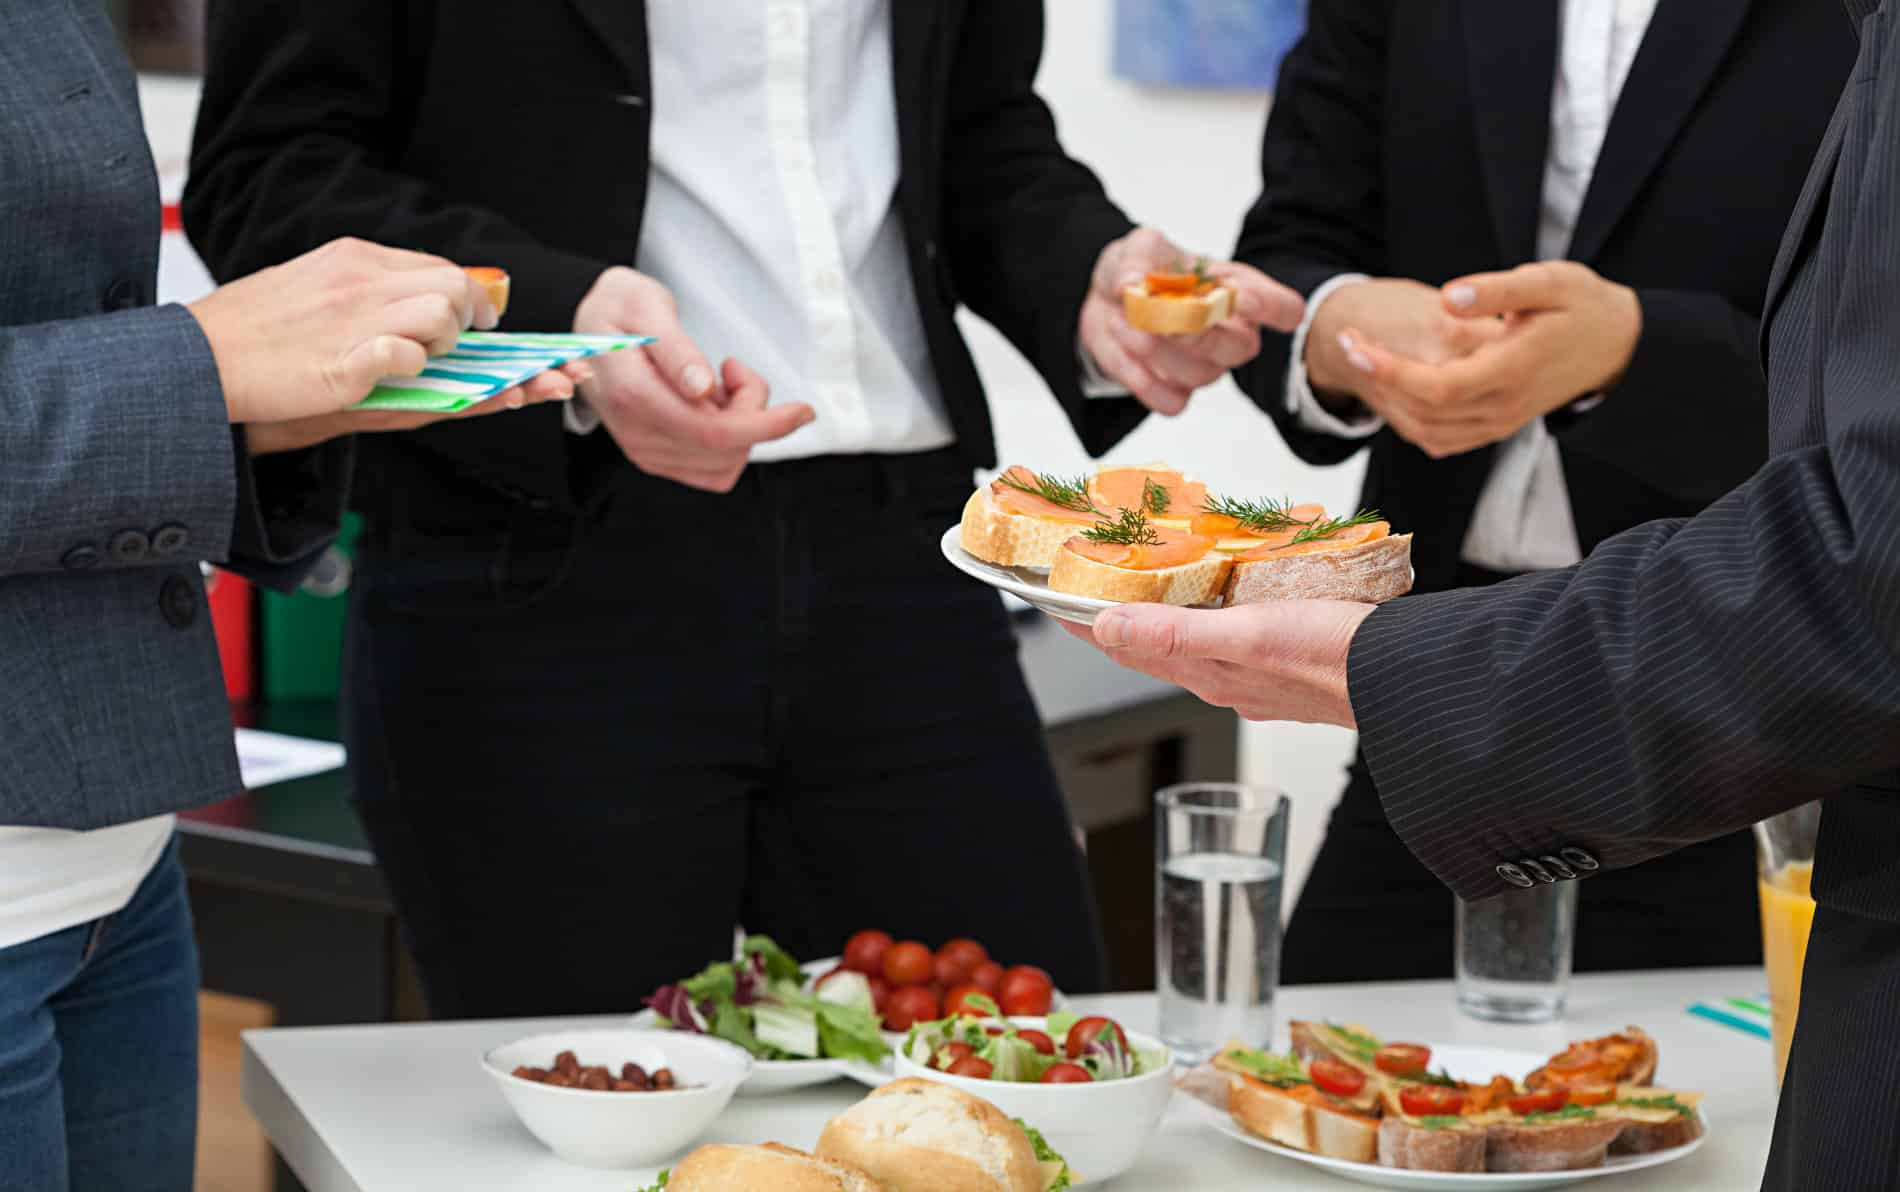 Four business people wearing dark suits with white shirts enjoying a green salad with red tomatoes, sliced bread and a clear beverage.